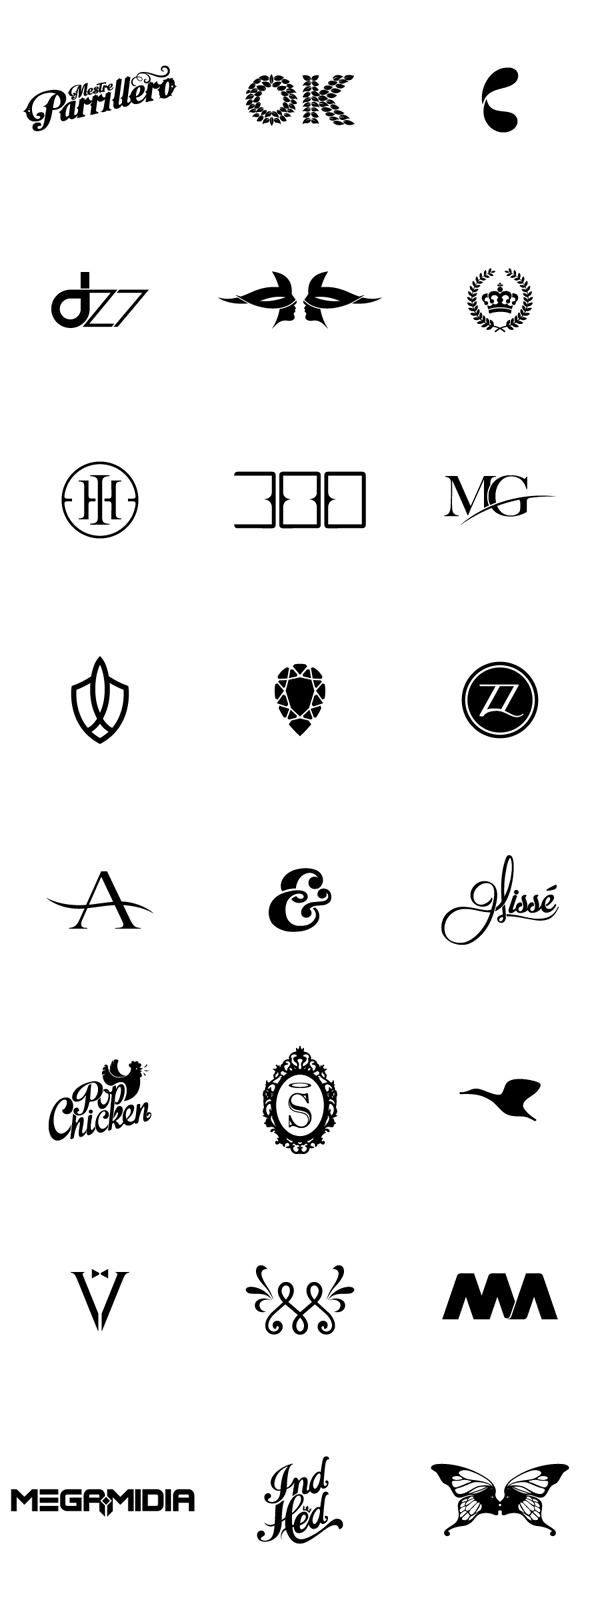 Collection of custom letterings and logos created by IndustriaHED™ Branding Co.